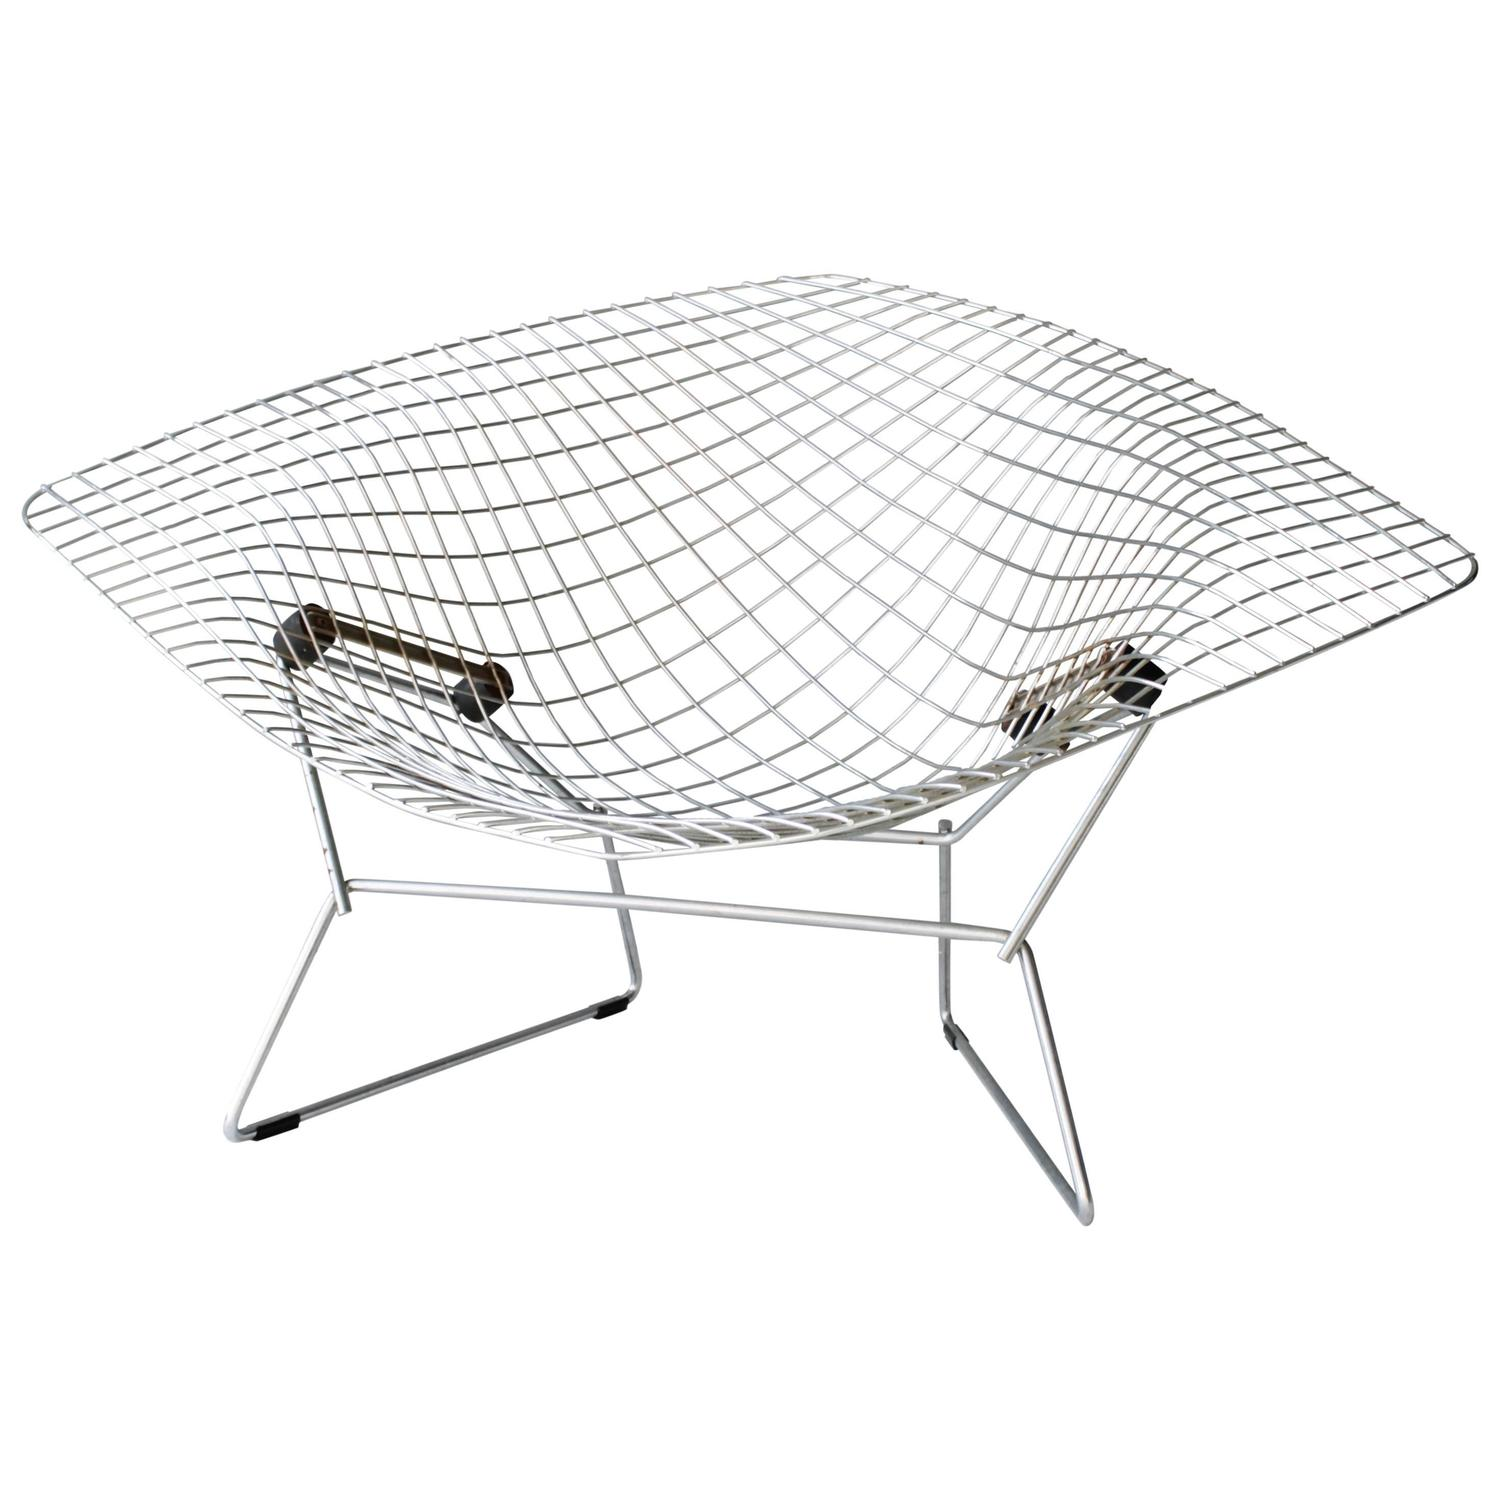 Bertoia diamond chair vintage - Large Diamond Chair By Harry Bertoia For Knoll